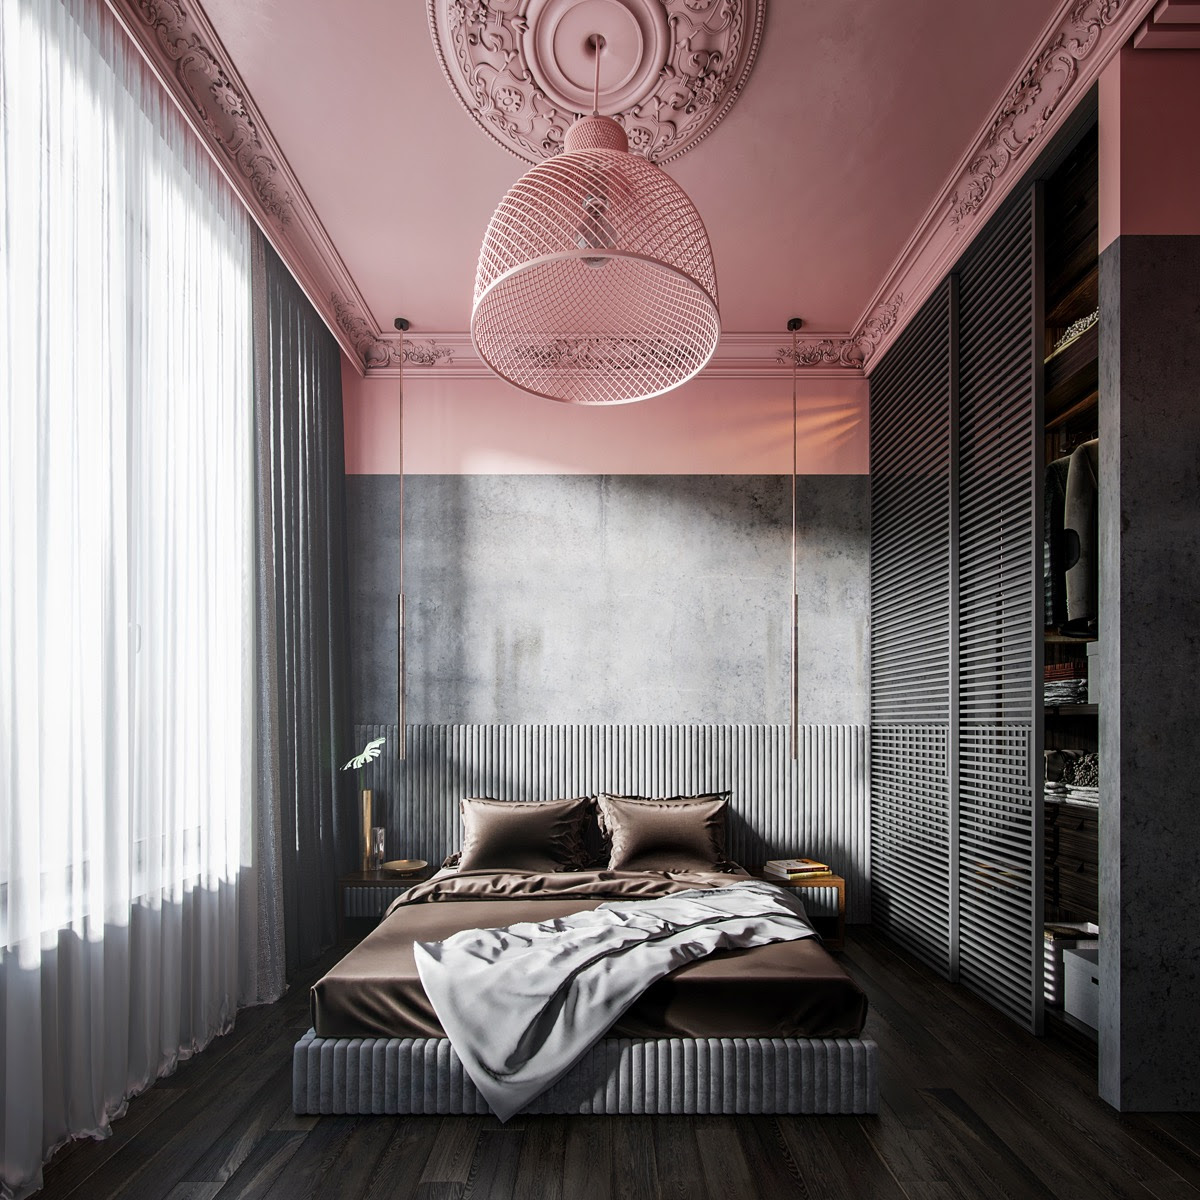 101 Pink iBedroomsi With Images Tips And Accessories To